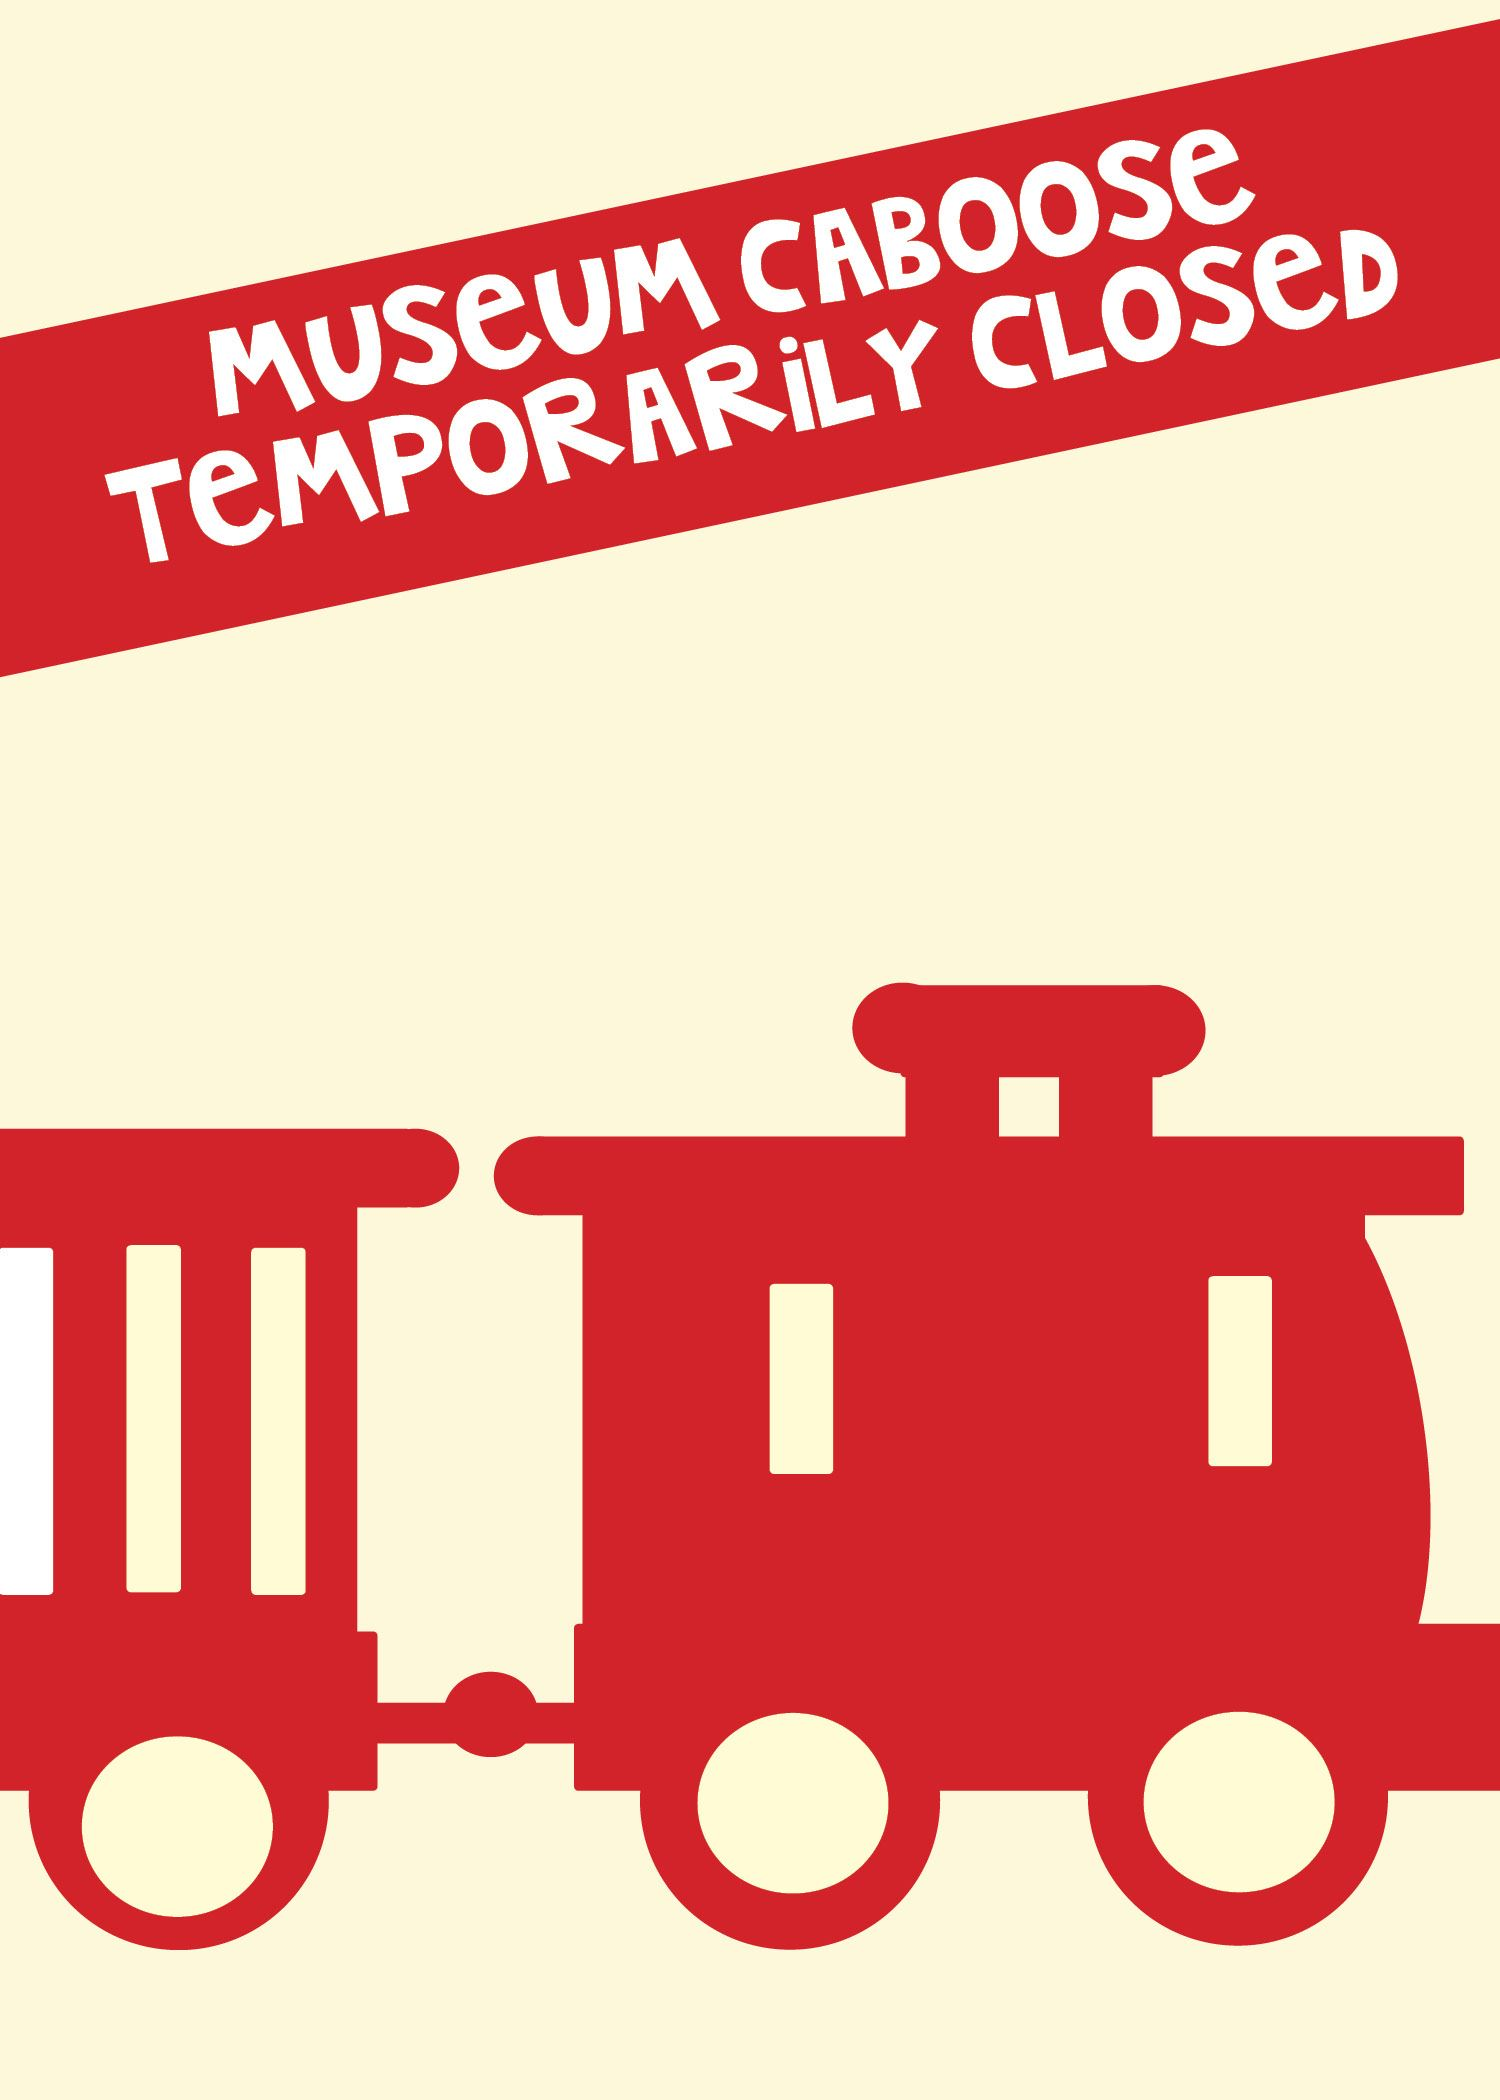 caboose closed